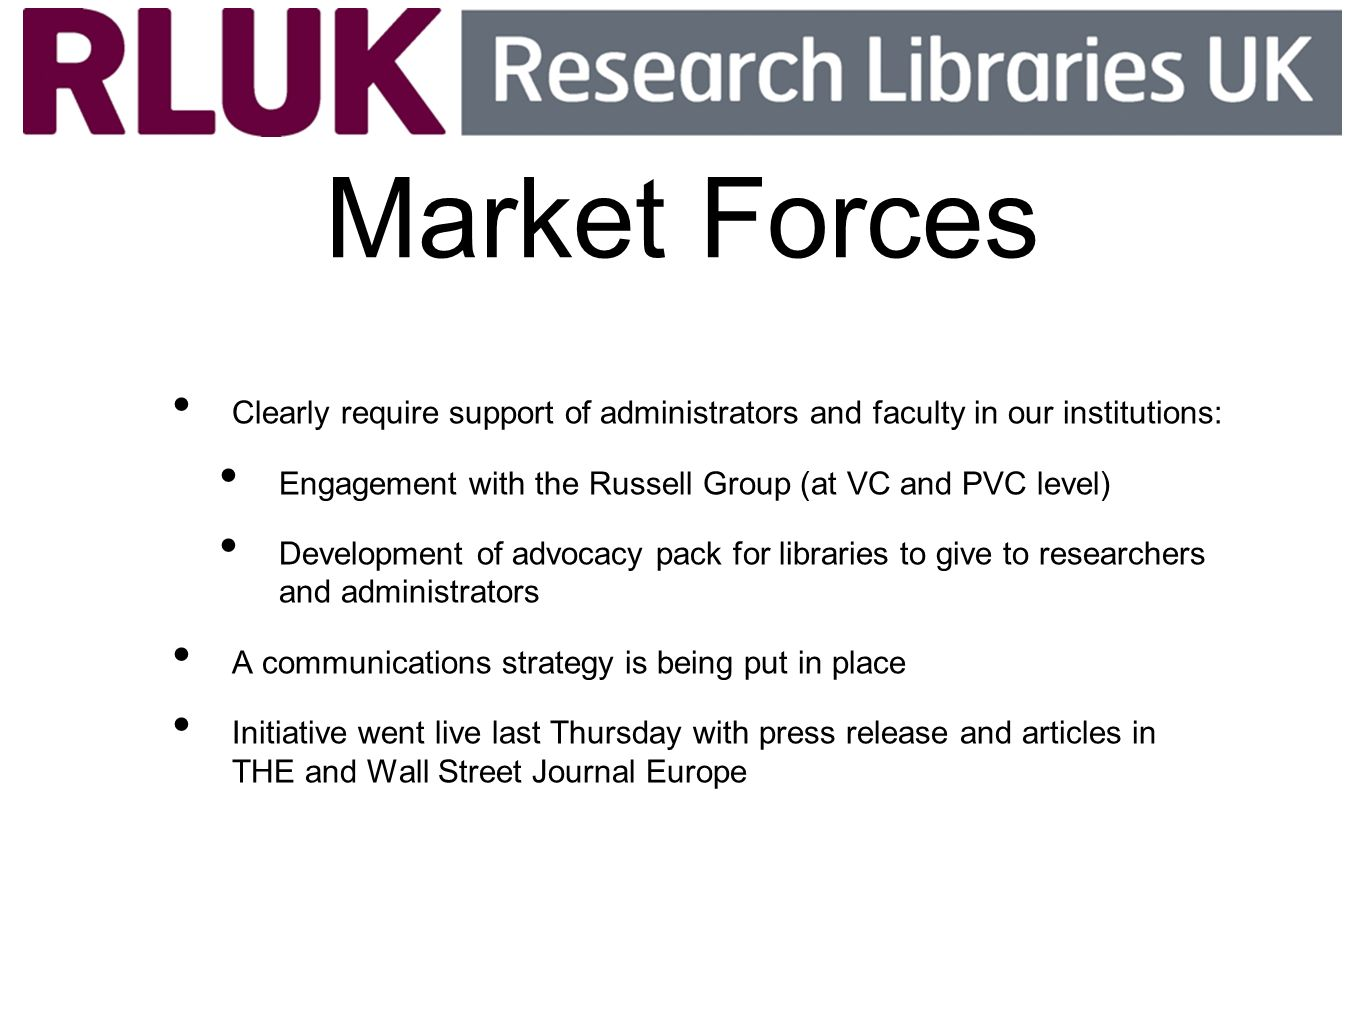 Market Forces Clearly require support of administrators and faculty in our institutions: Engagement with the Russell Group (at VC and PVC level) Development of advocacy pack for libraries to give to researchers and administrators A communications strategy is being put in place Initiative went live last Thursday with press release and articles in THE and Wall Street Journal Europe